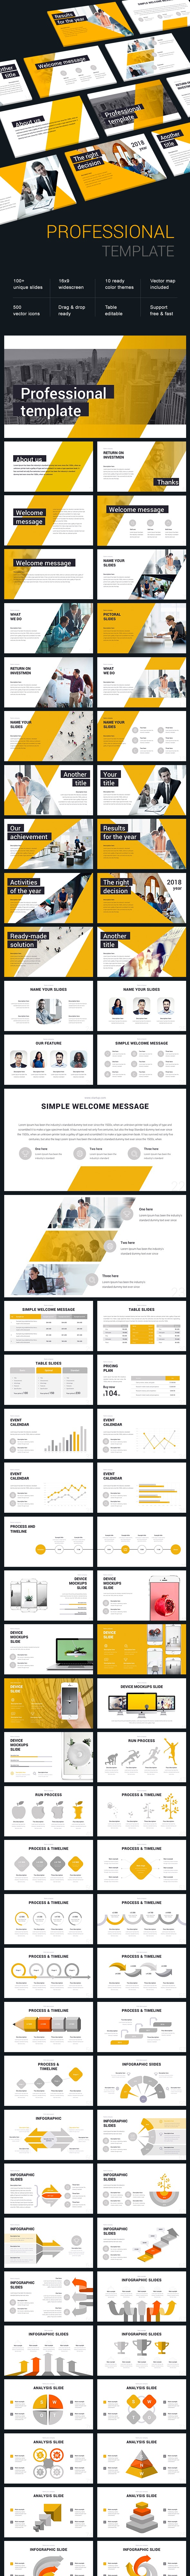 Business Professional - Pitch Deck PowerPoint Templates